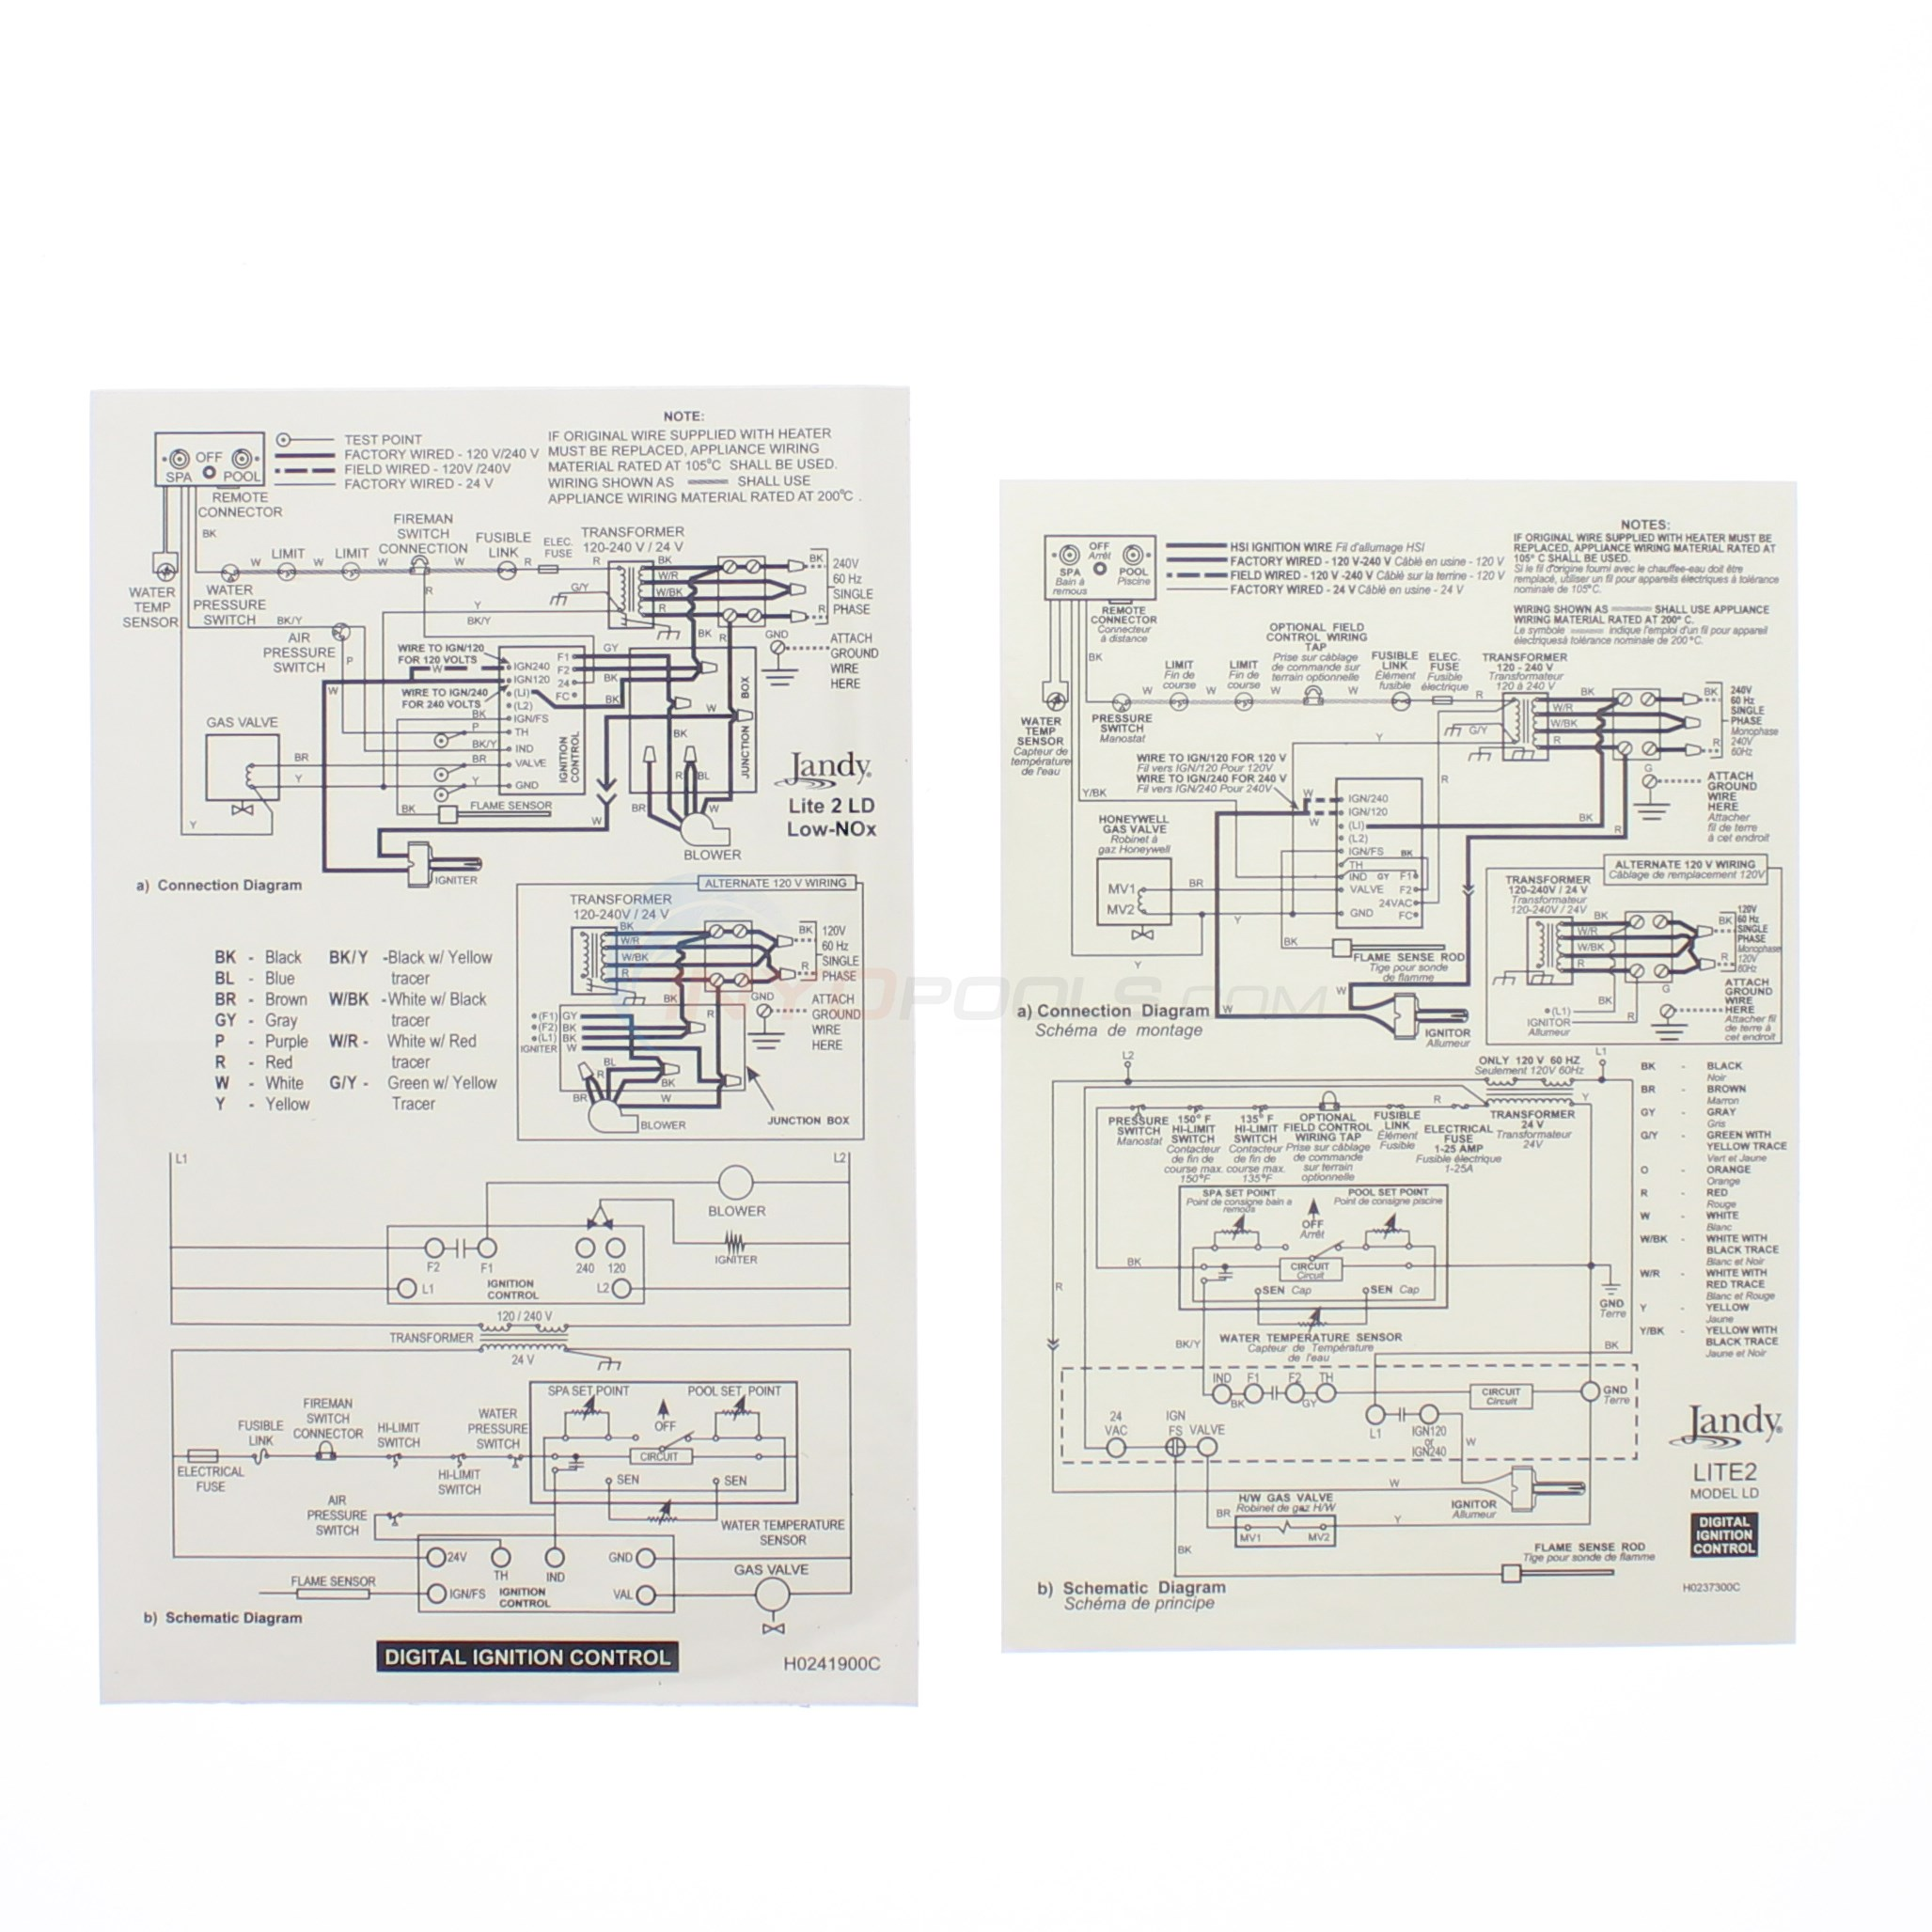 zodiac 6200 0301?format=jpg&scale=both&anchor=middlecenter&autorotate=true&mode=pad&width=650&height=650 zodiac ignition control assembly (r0408100) inyopools com fenwal ignition module wiring diagram at bayanpartner.co